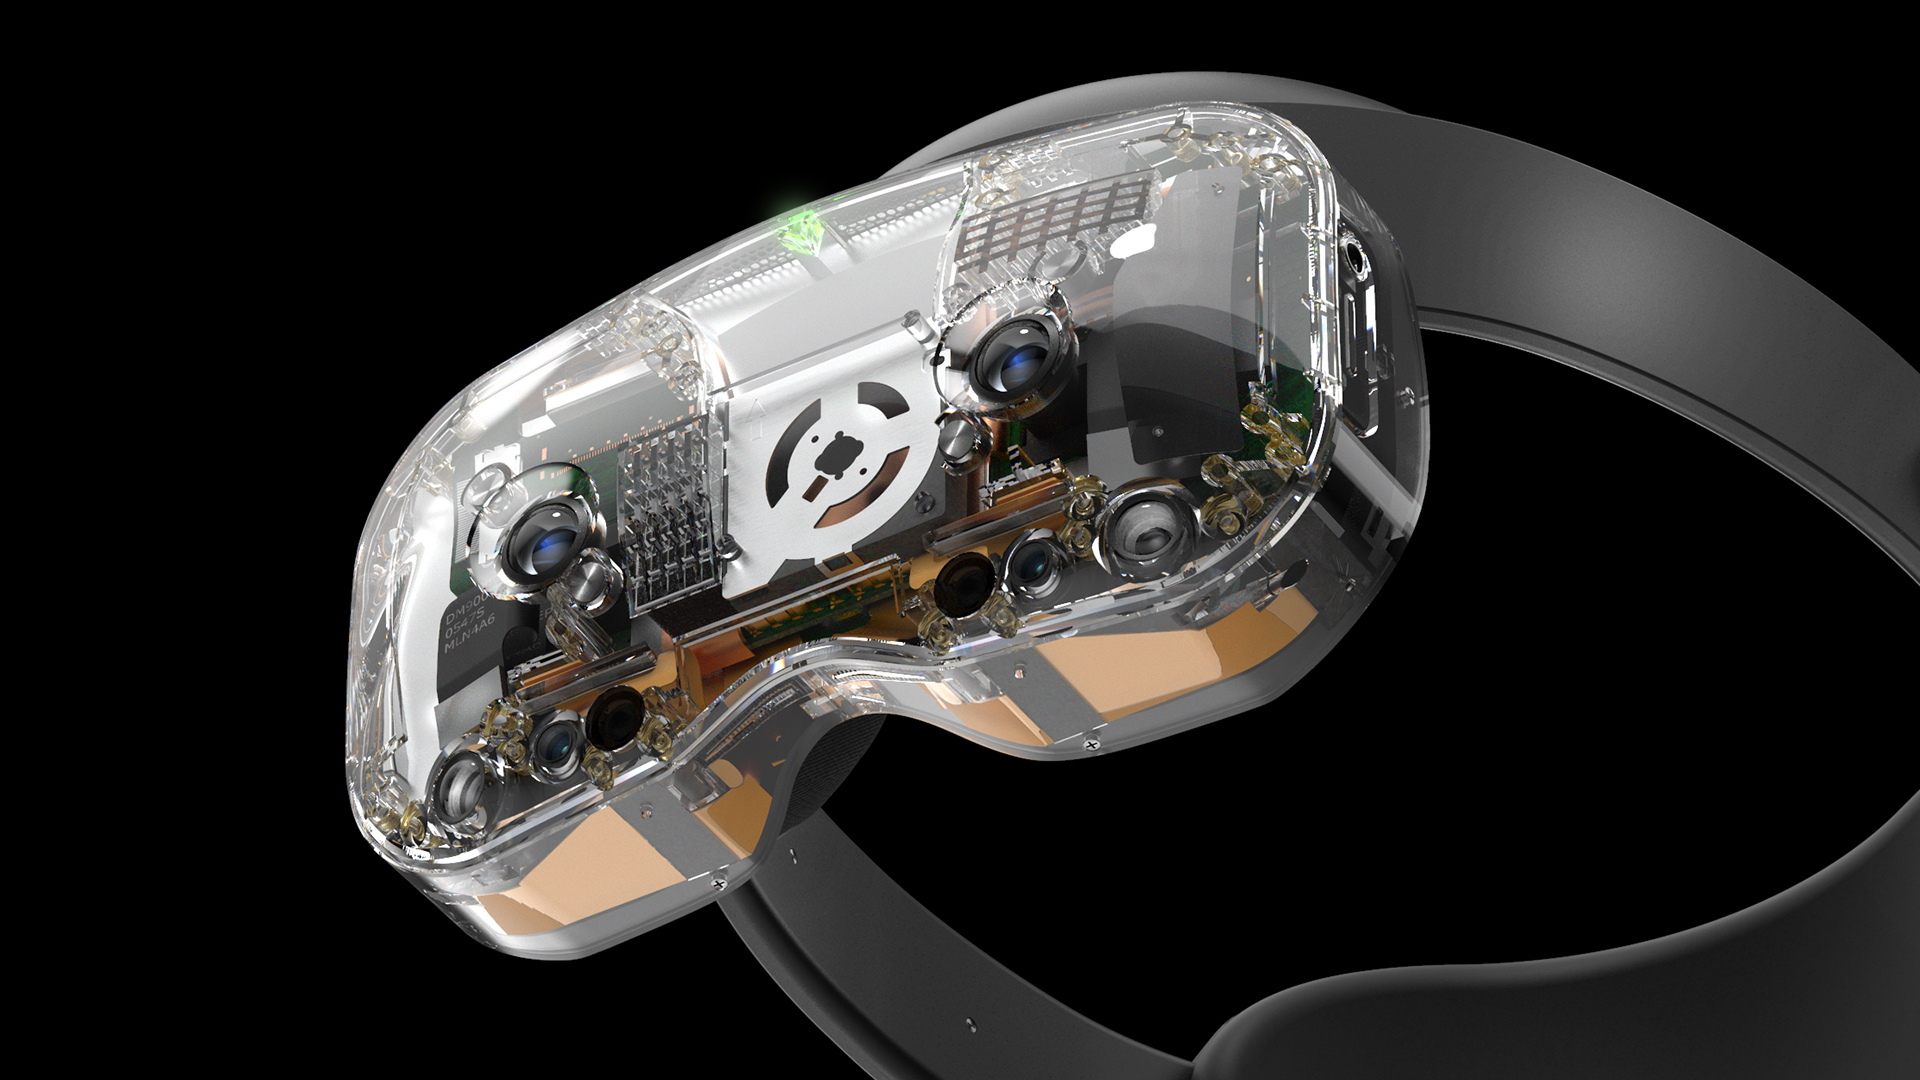 Lynx R-1: the first French mixed reality headset